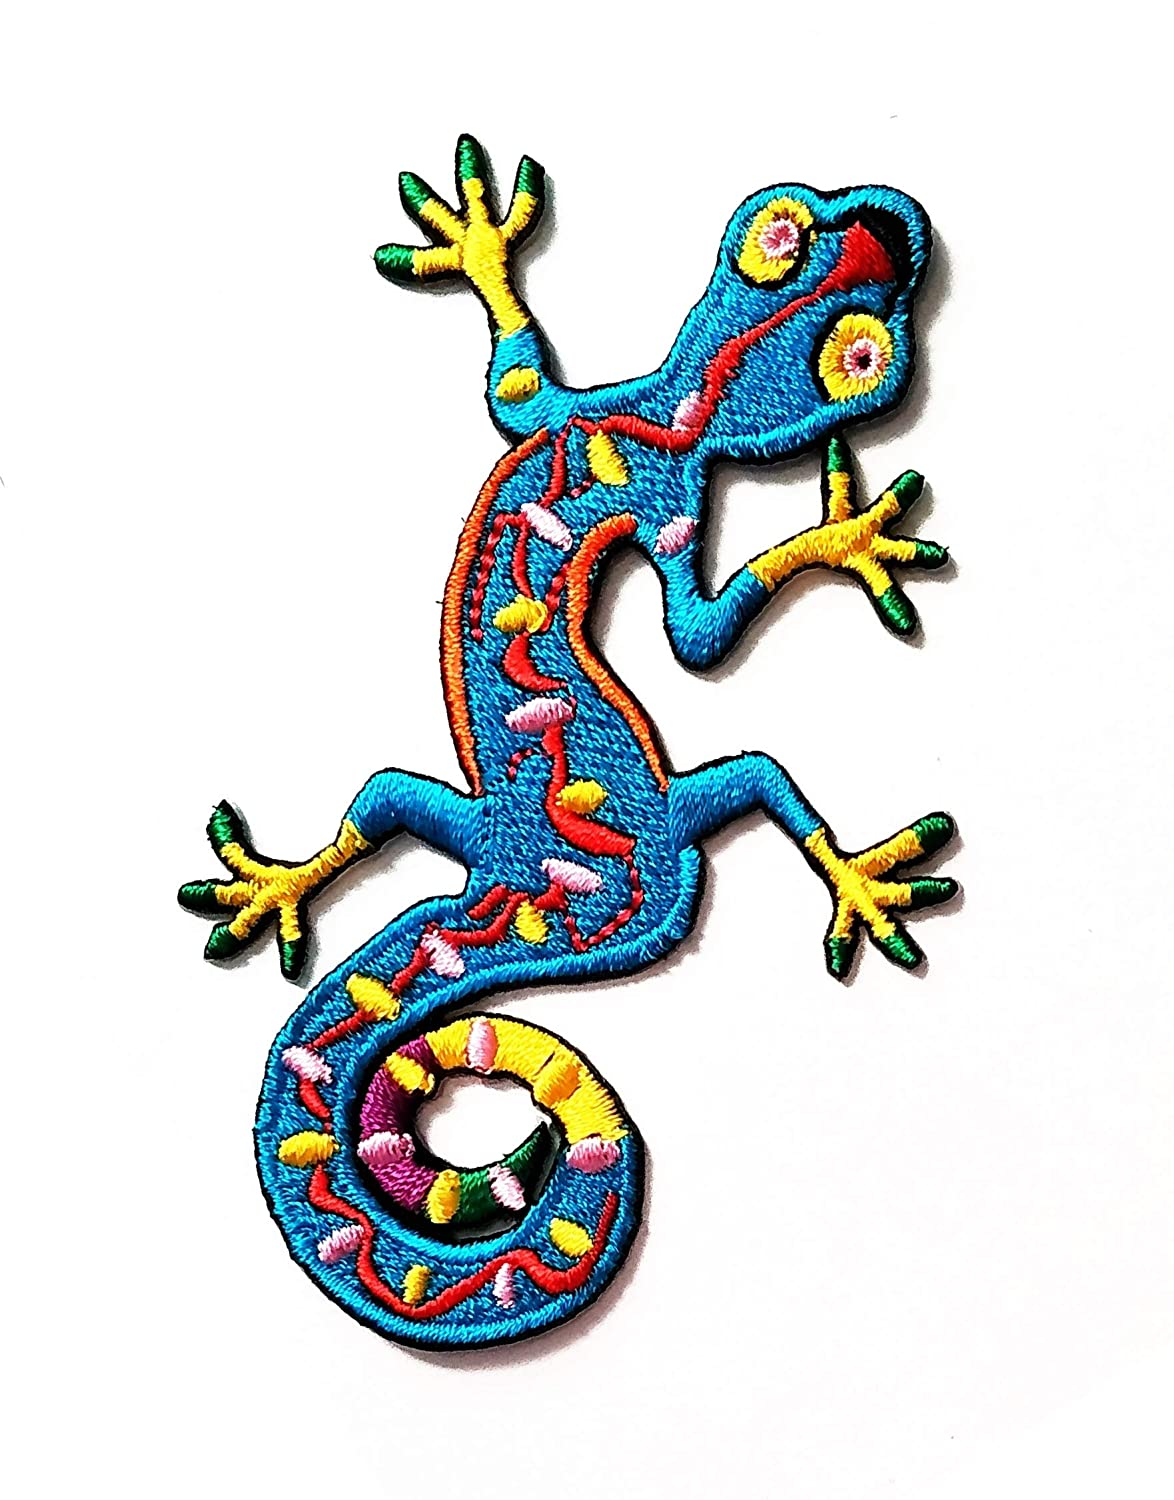 Nipitshop Patches Arts Design Blue Chameleon Lizard Animal Cartoon Kids Patch Embroidered Iron On Patch for Clothes Backpacks T-Shirt Jeans Skirt Vests Scarf Hat Bag